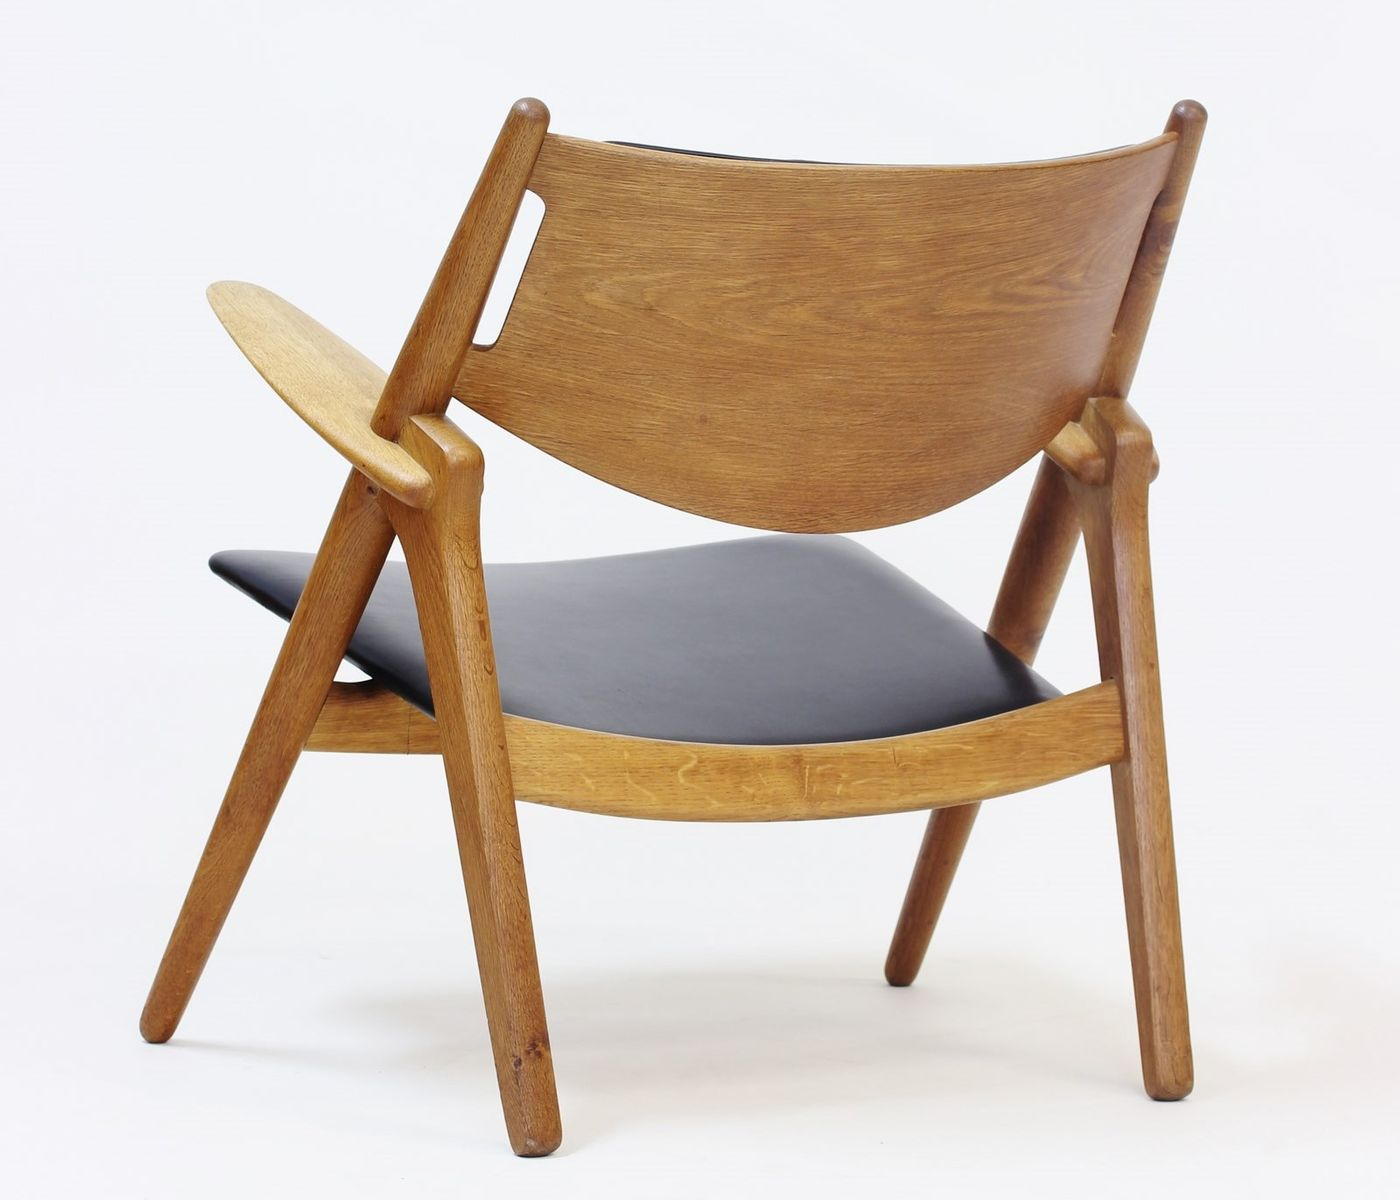 sawbench easy chair by hans j wegner for carl hansen. Black Bedroom Furniture Sets. Home Design Ideas